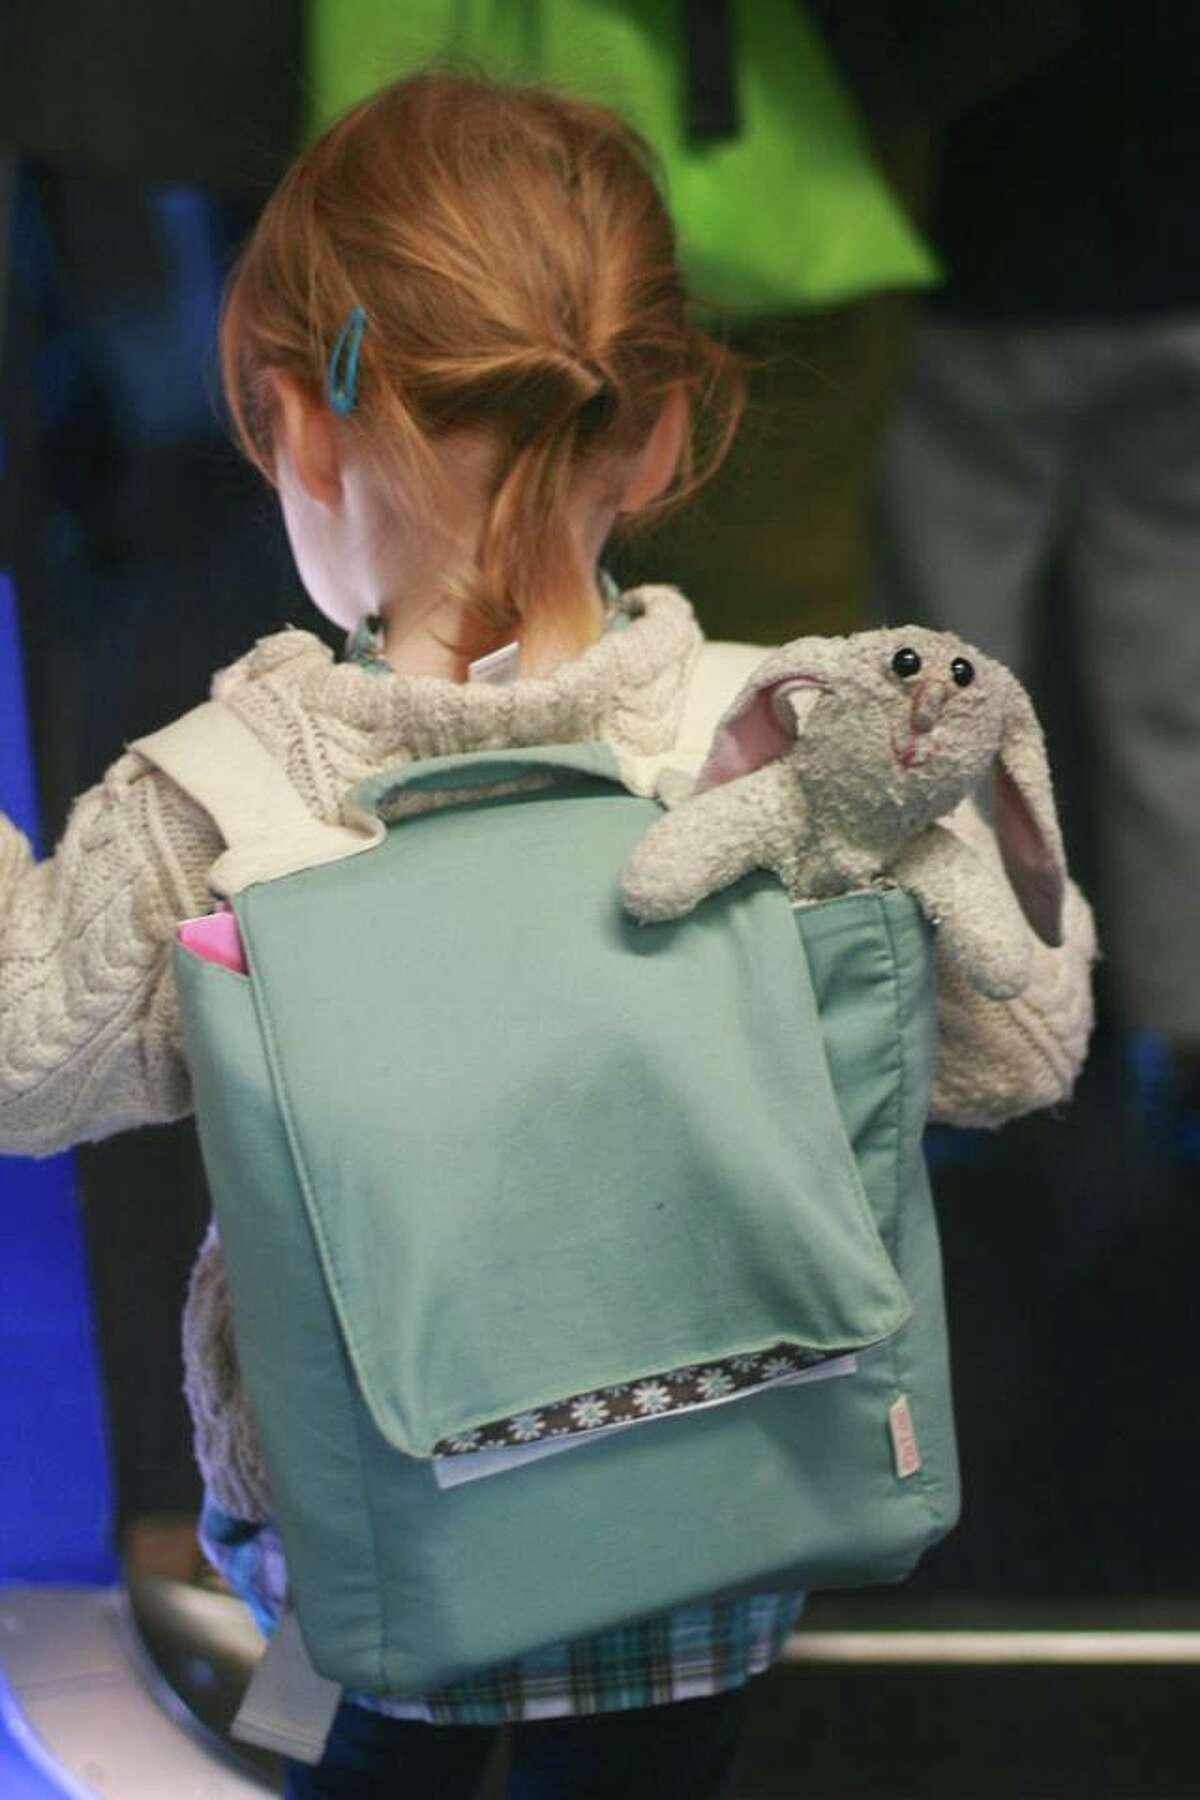 A California family is searching for their 9-year-old daughter's beloved stuffed Bunny, which they said was lost Nov. 24 in the Capital Region.